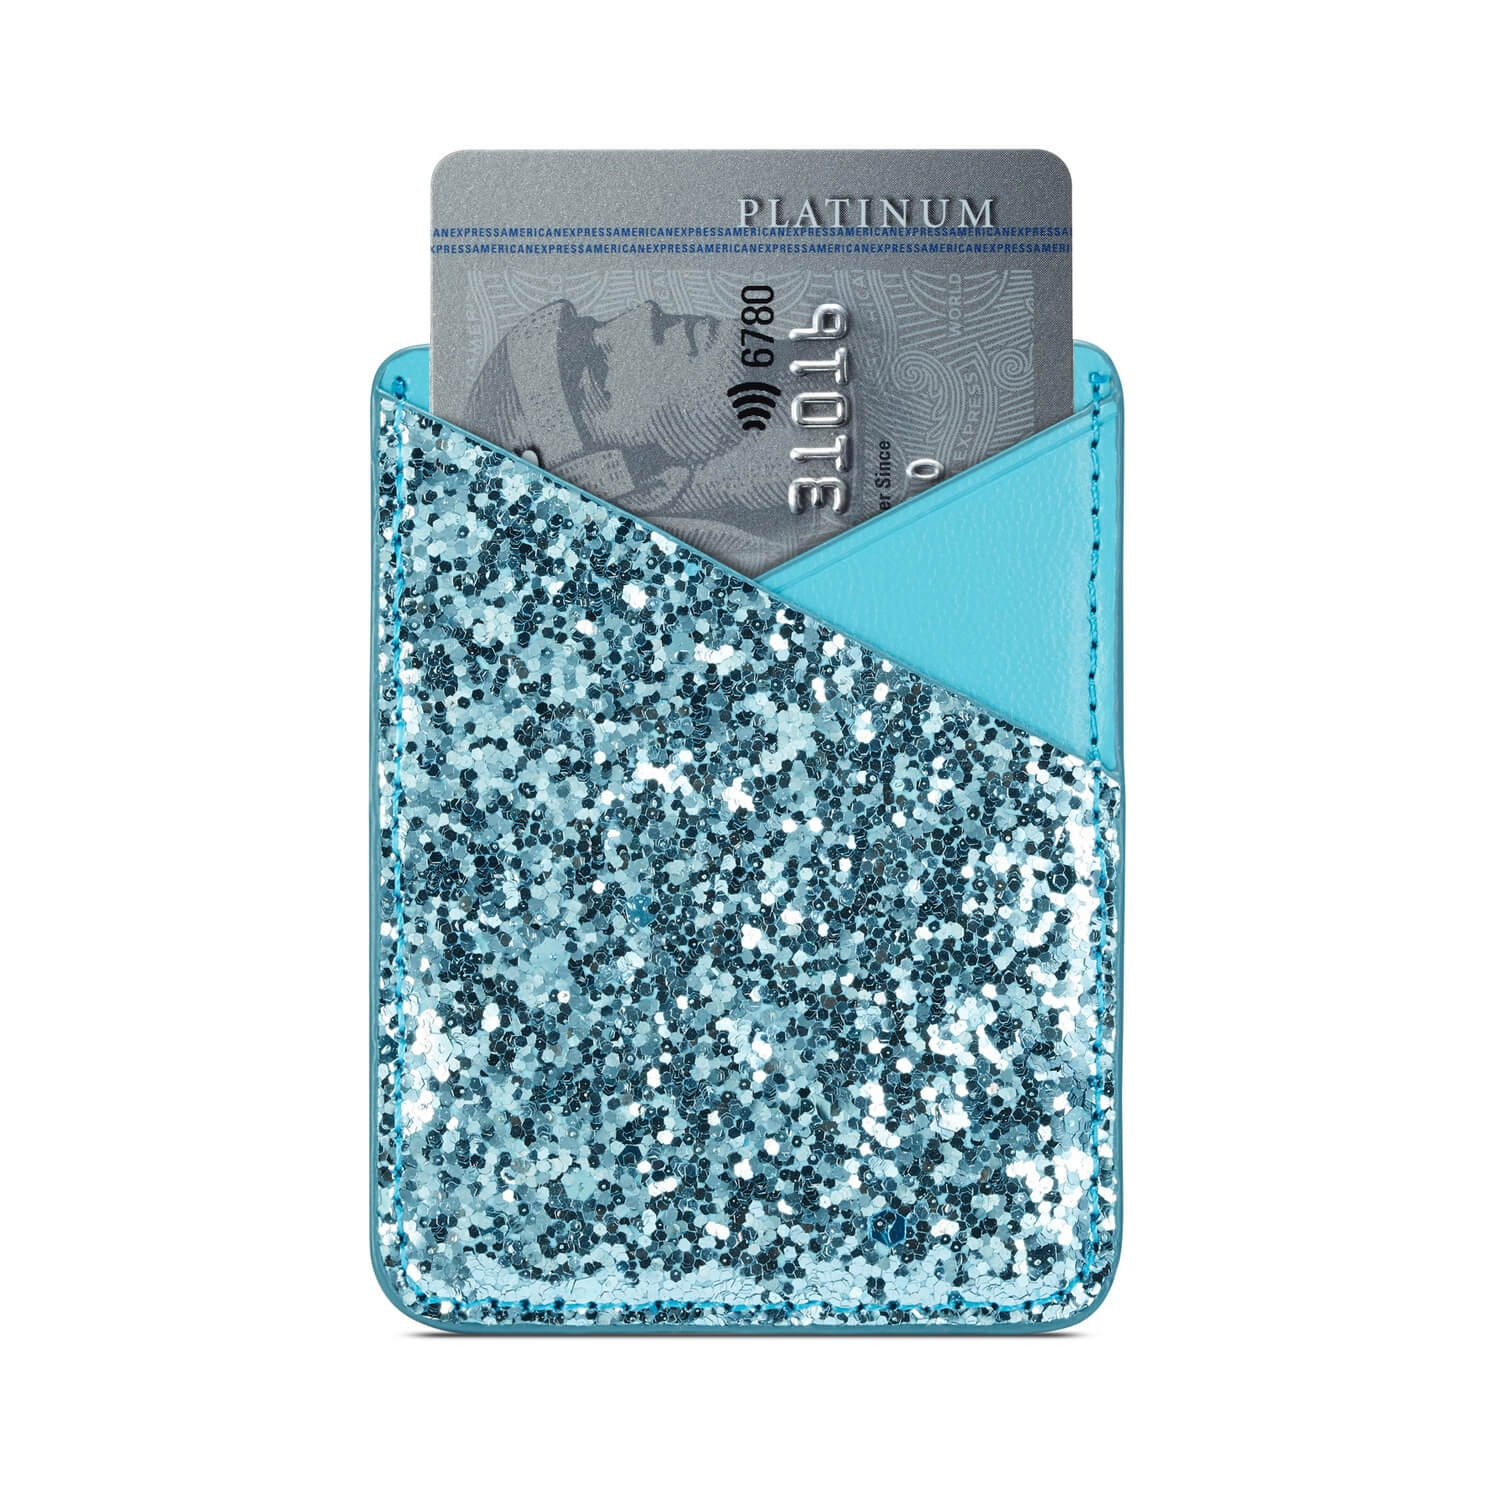 Phone Card Holder Adhesive Stick-on Credit Card Pu Leather Wallet Card Holder Back Phone case Pouch Sleeve Pocket Most Smartphones iPhone/Android /Samsung Galaxy(Rose-Gold-Blue) by Aroko (Image #9)